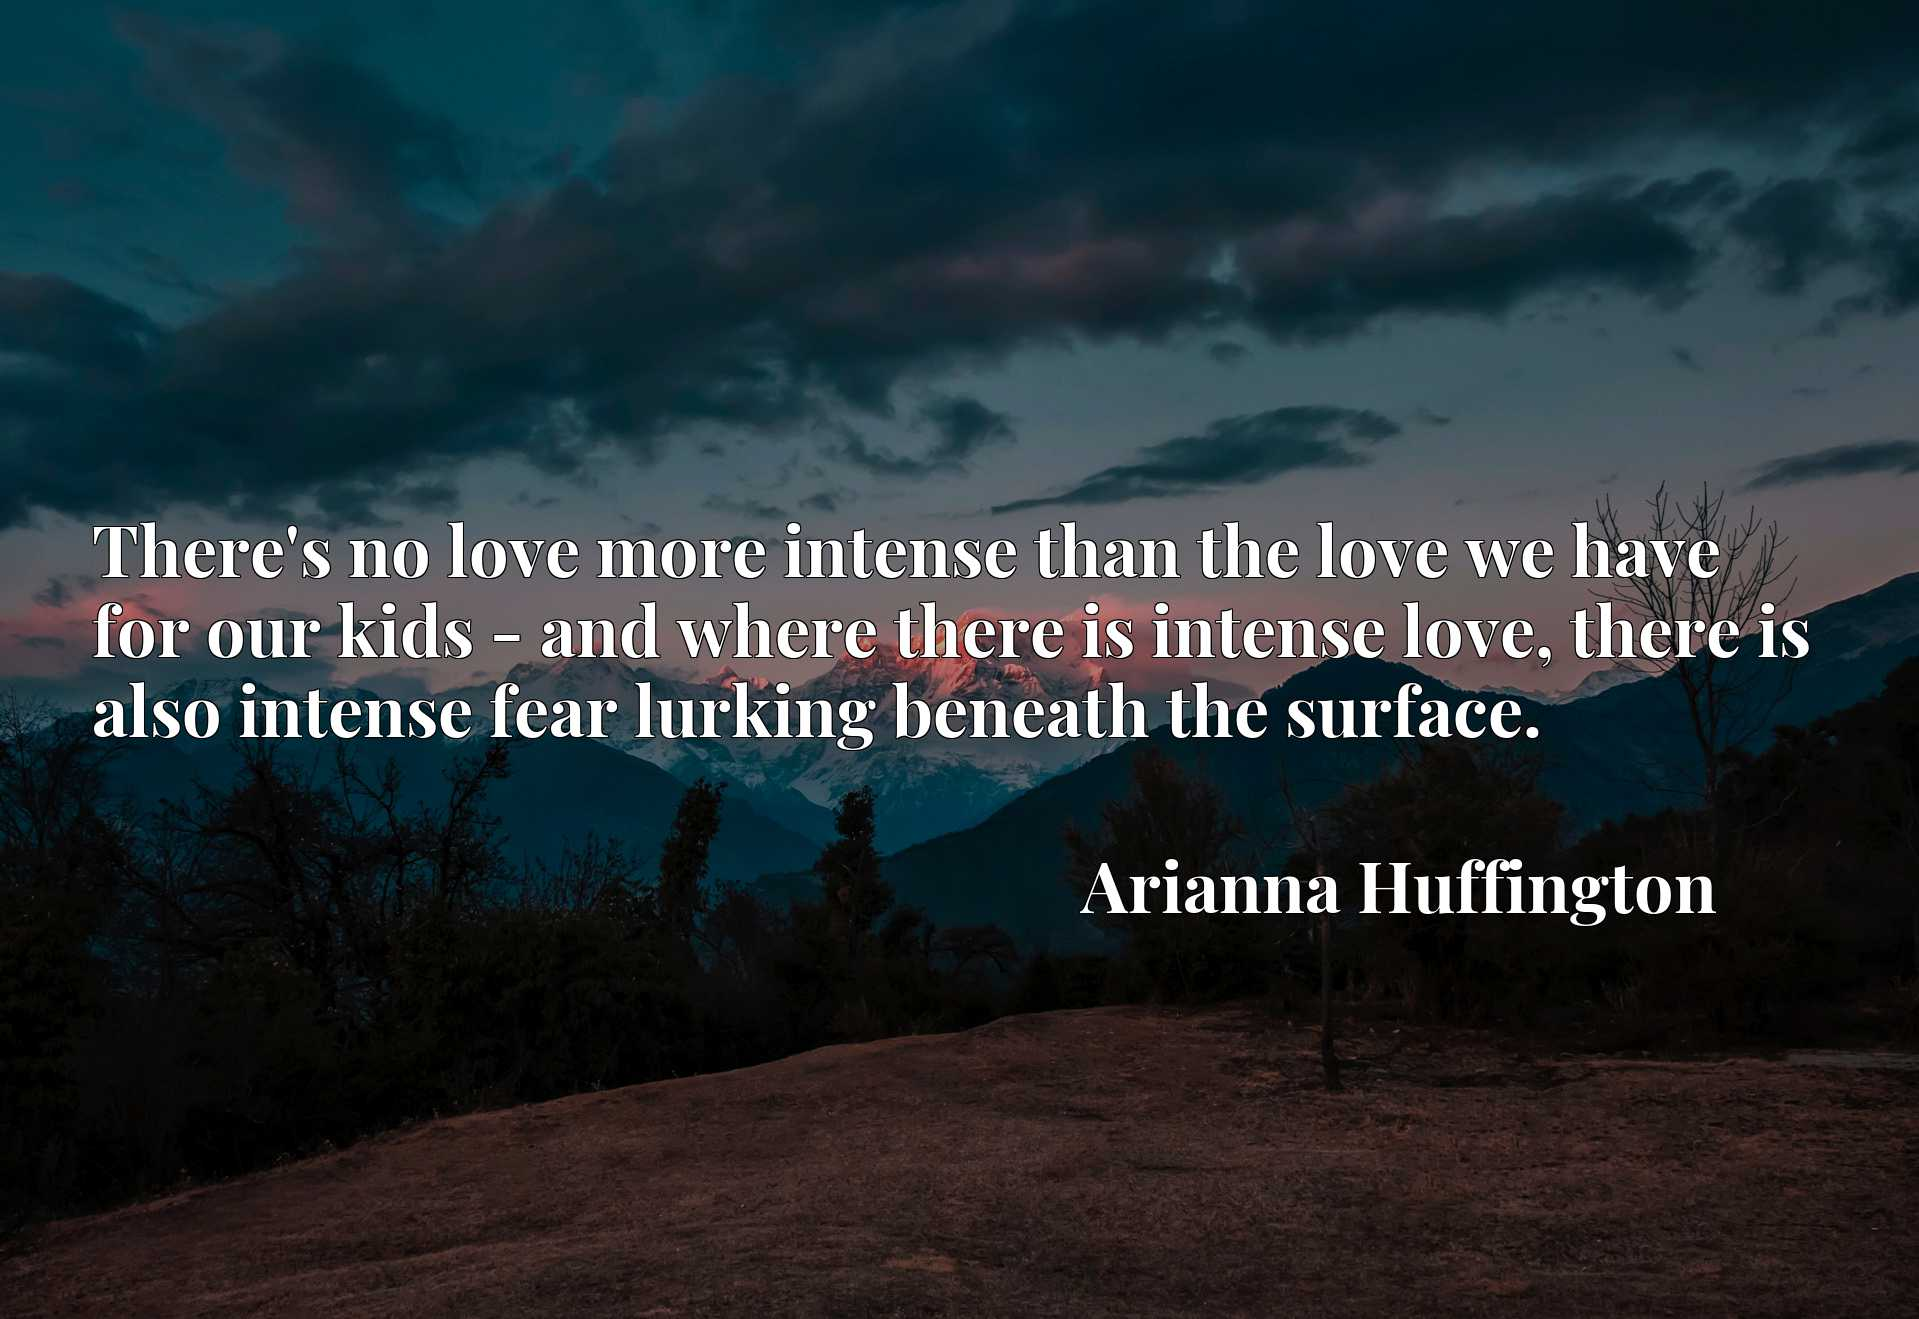 There's no love more intense than the love we have for our kids - and where there is intense love, there is also intense fear lurking beneath the surface.